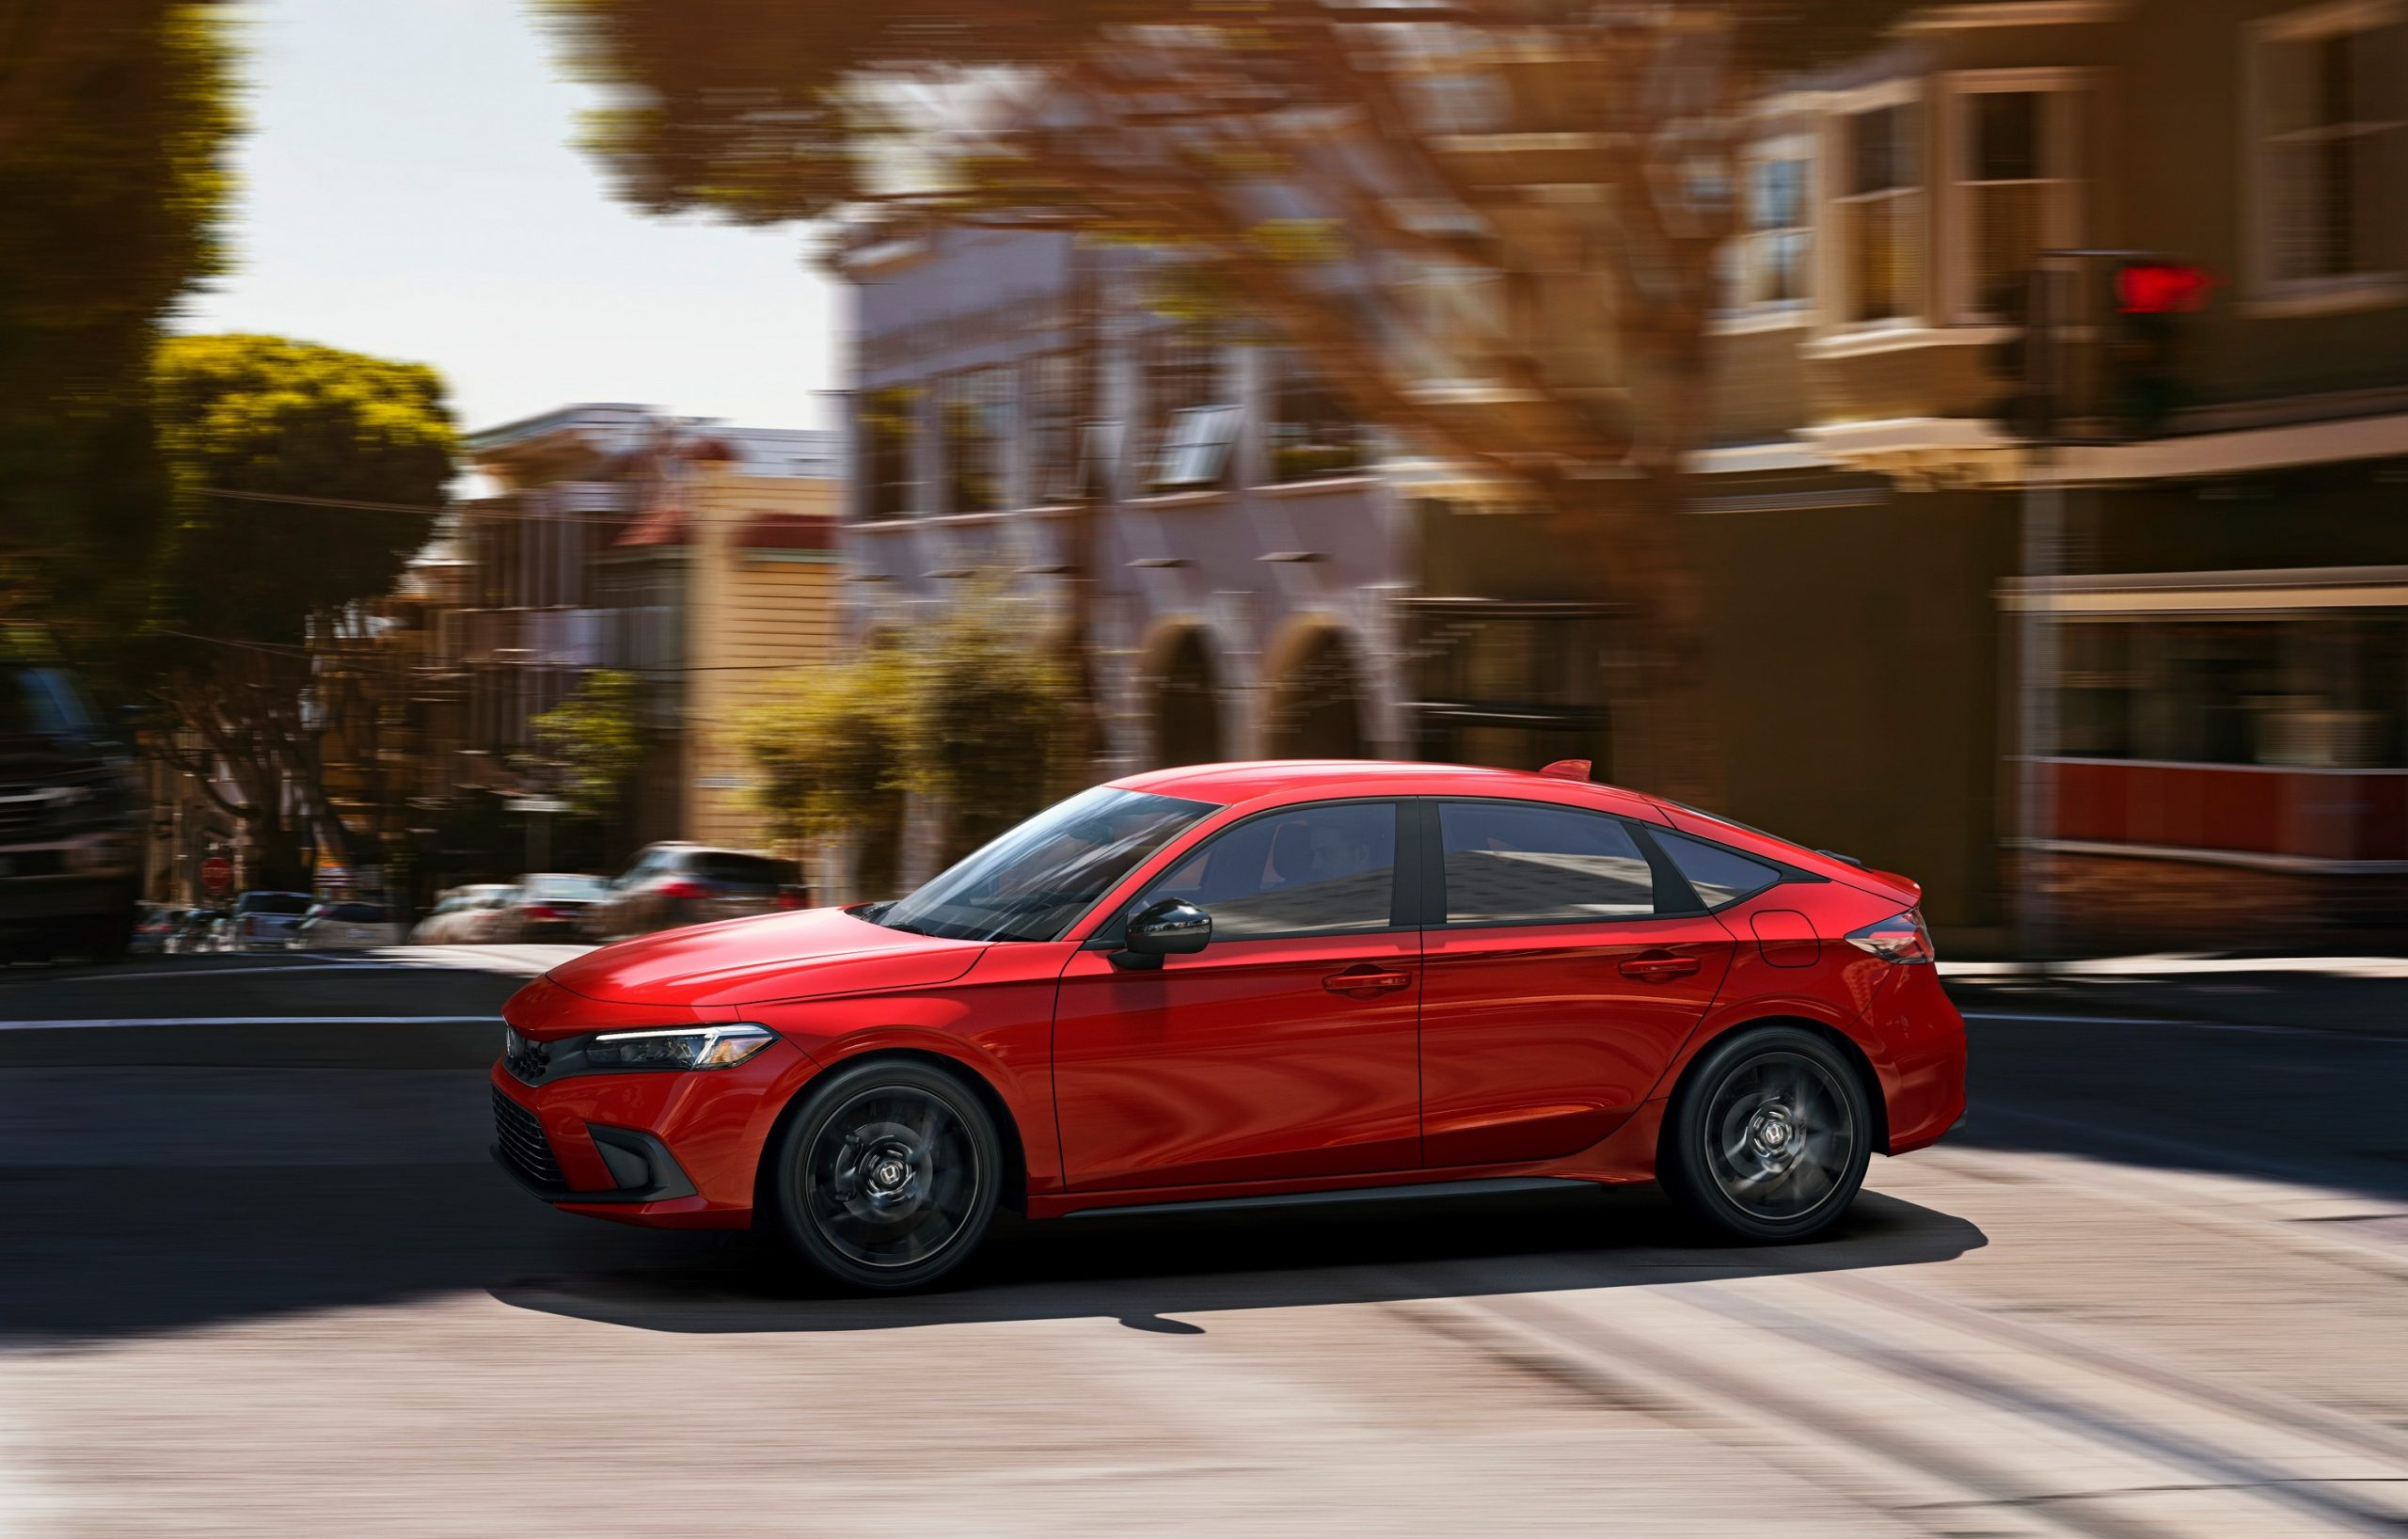 A red 2022 Honda Civic hatchback shot in profile on a city street